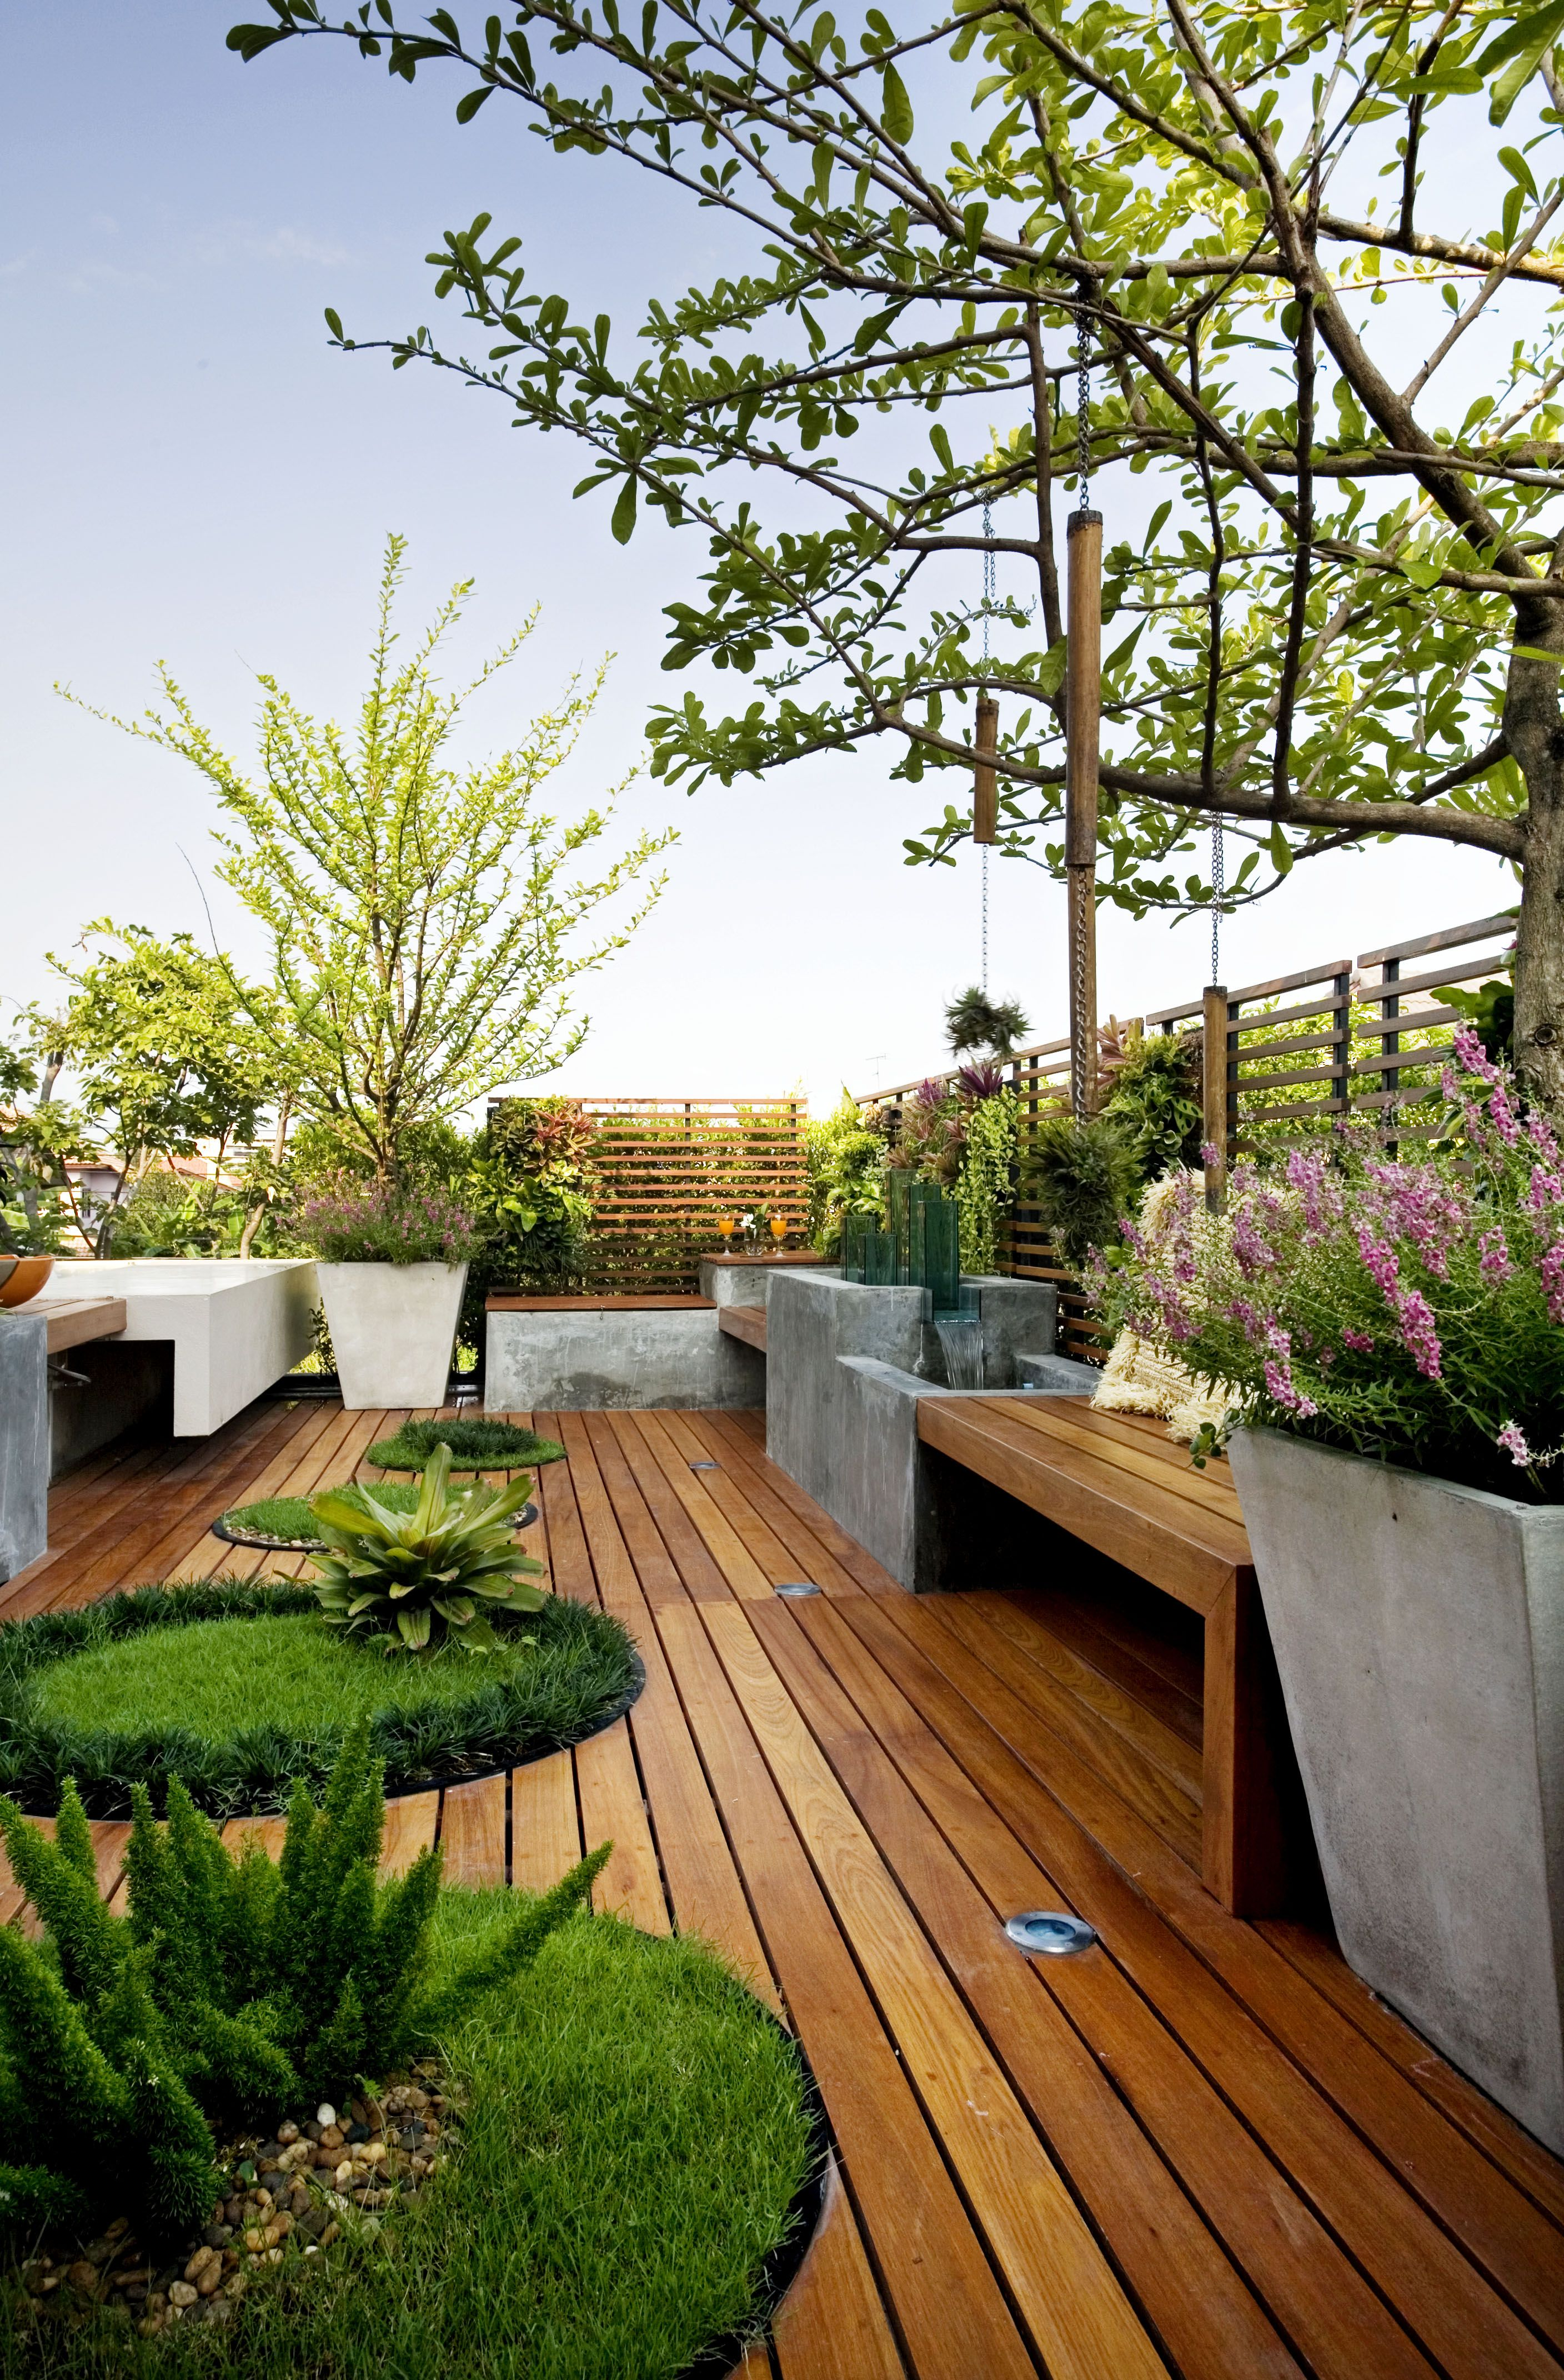 Dachterrasse Ideen 25 Beautiful Rooftop Garden Designs To Get Inspired Dakterras